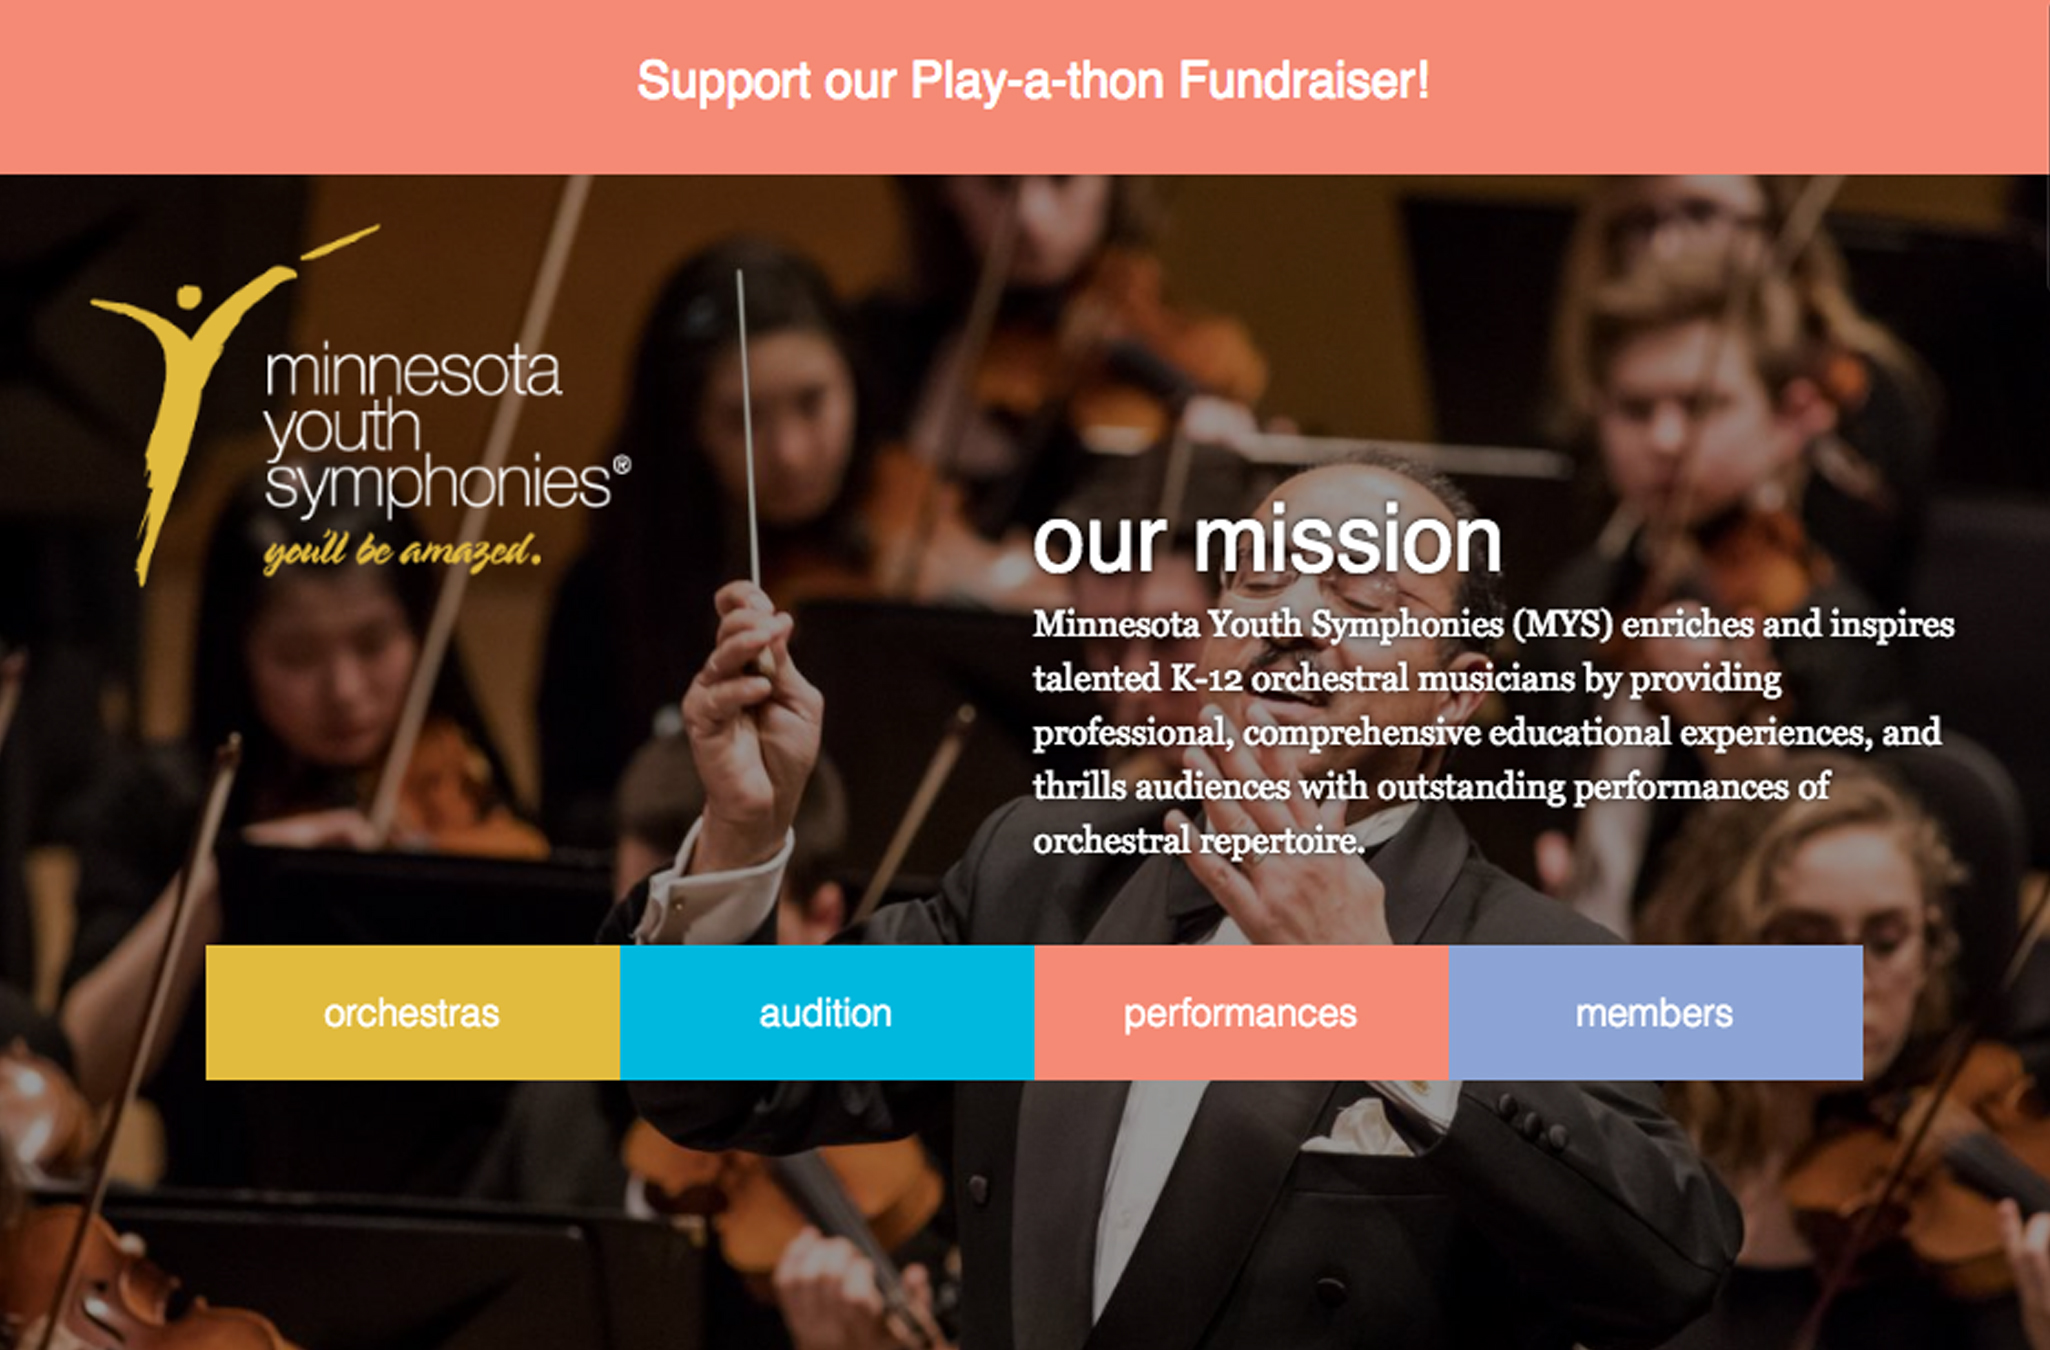 www.mnyouthsymphonies.org website